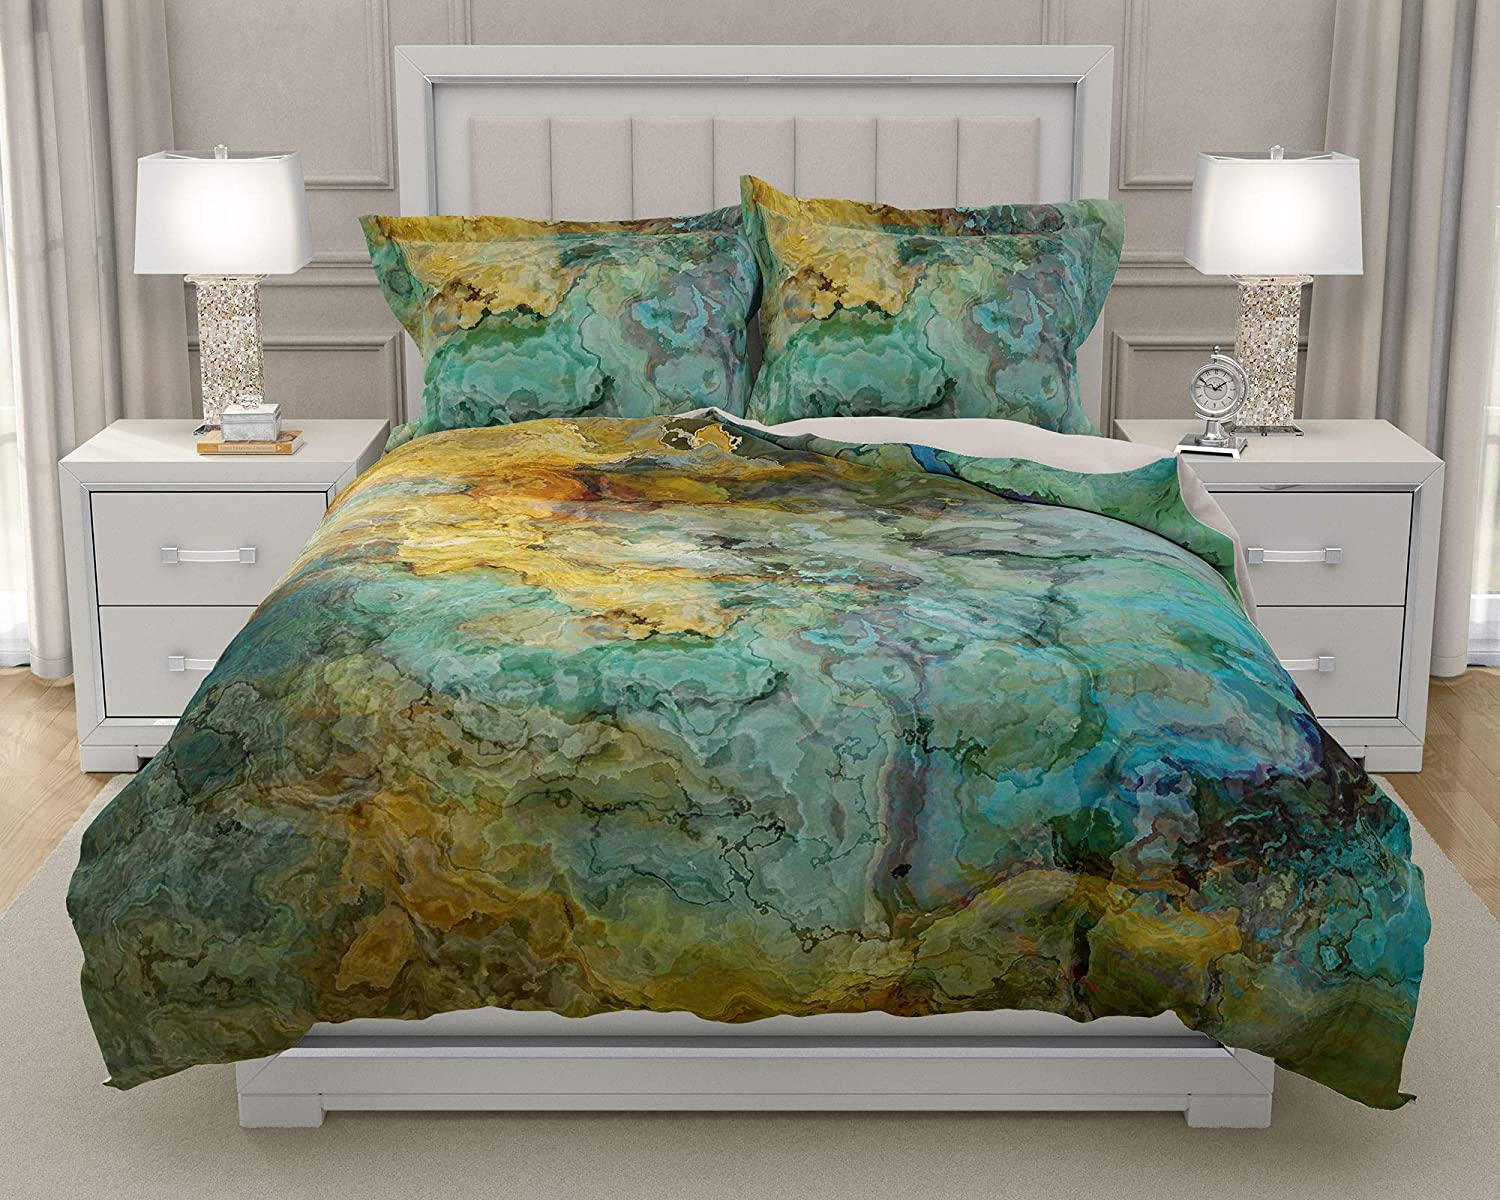 Image of Home and Kitchen King or Queen 3 pc Duvet Cover Set with abstract art, Kinetic